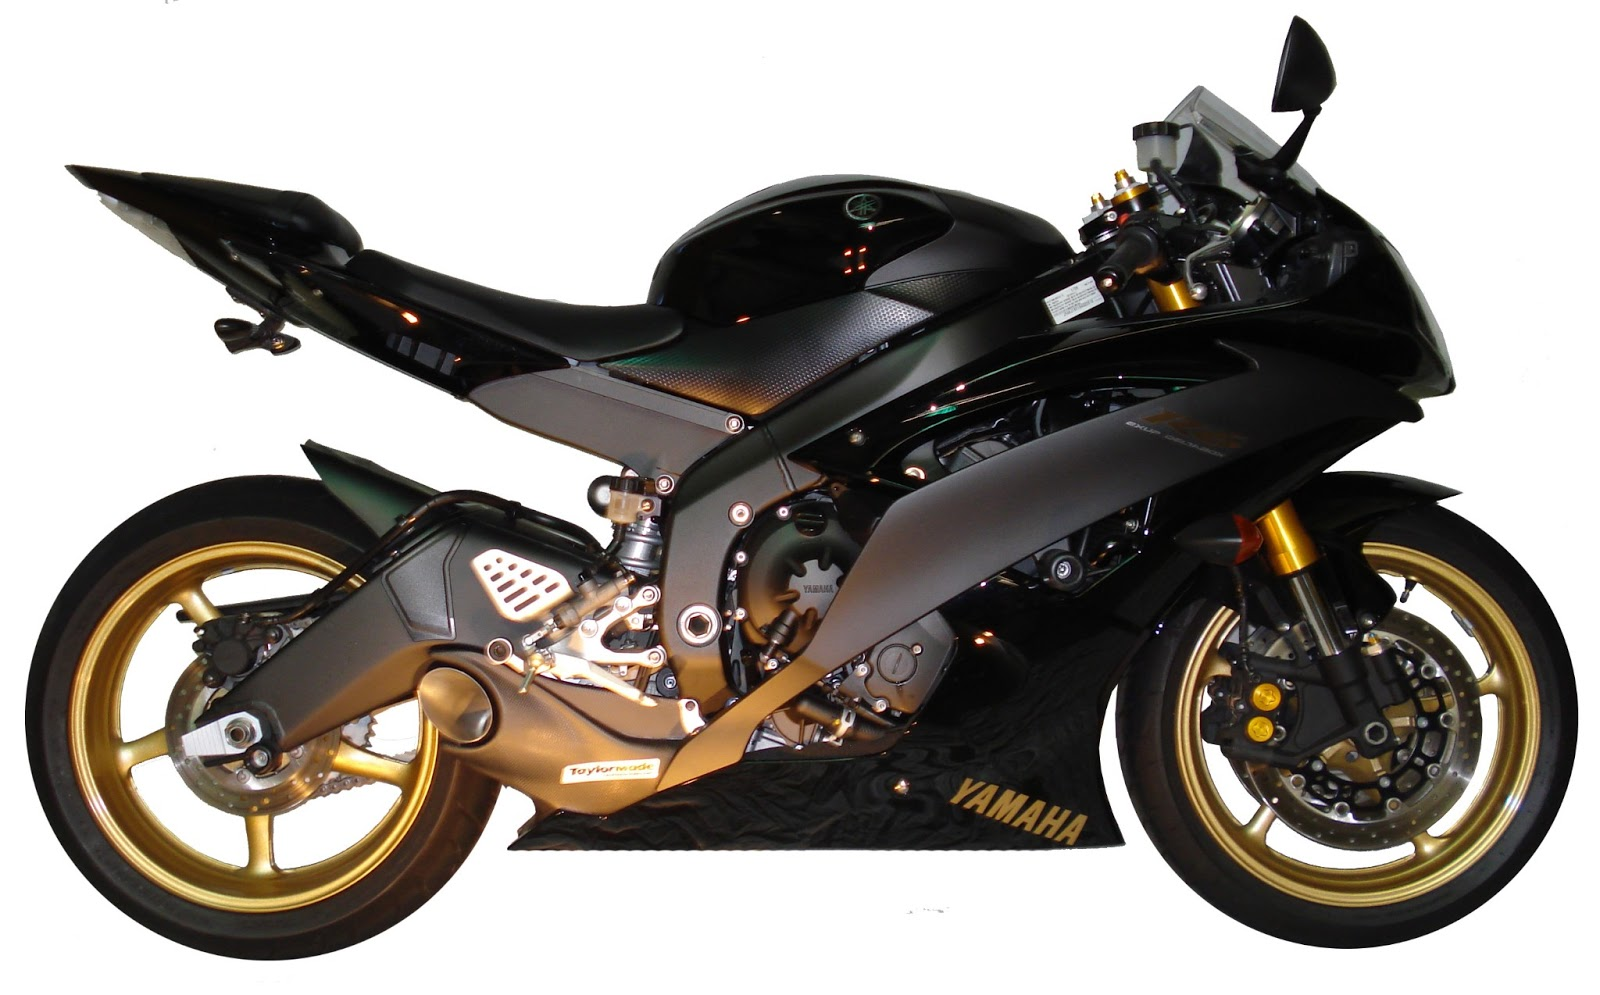 Yamaha r6 exhaust wallpaper world for Yamaha installment financing